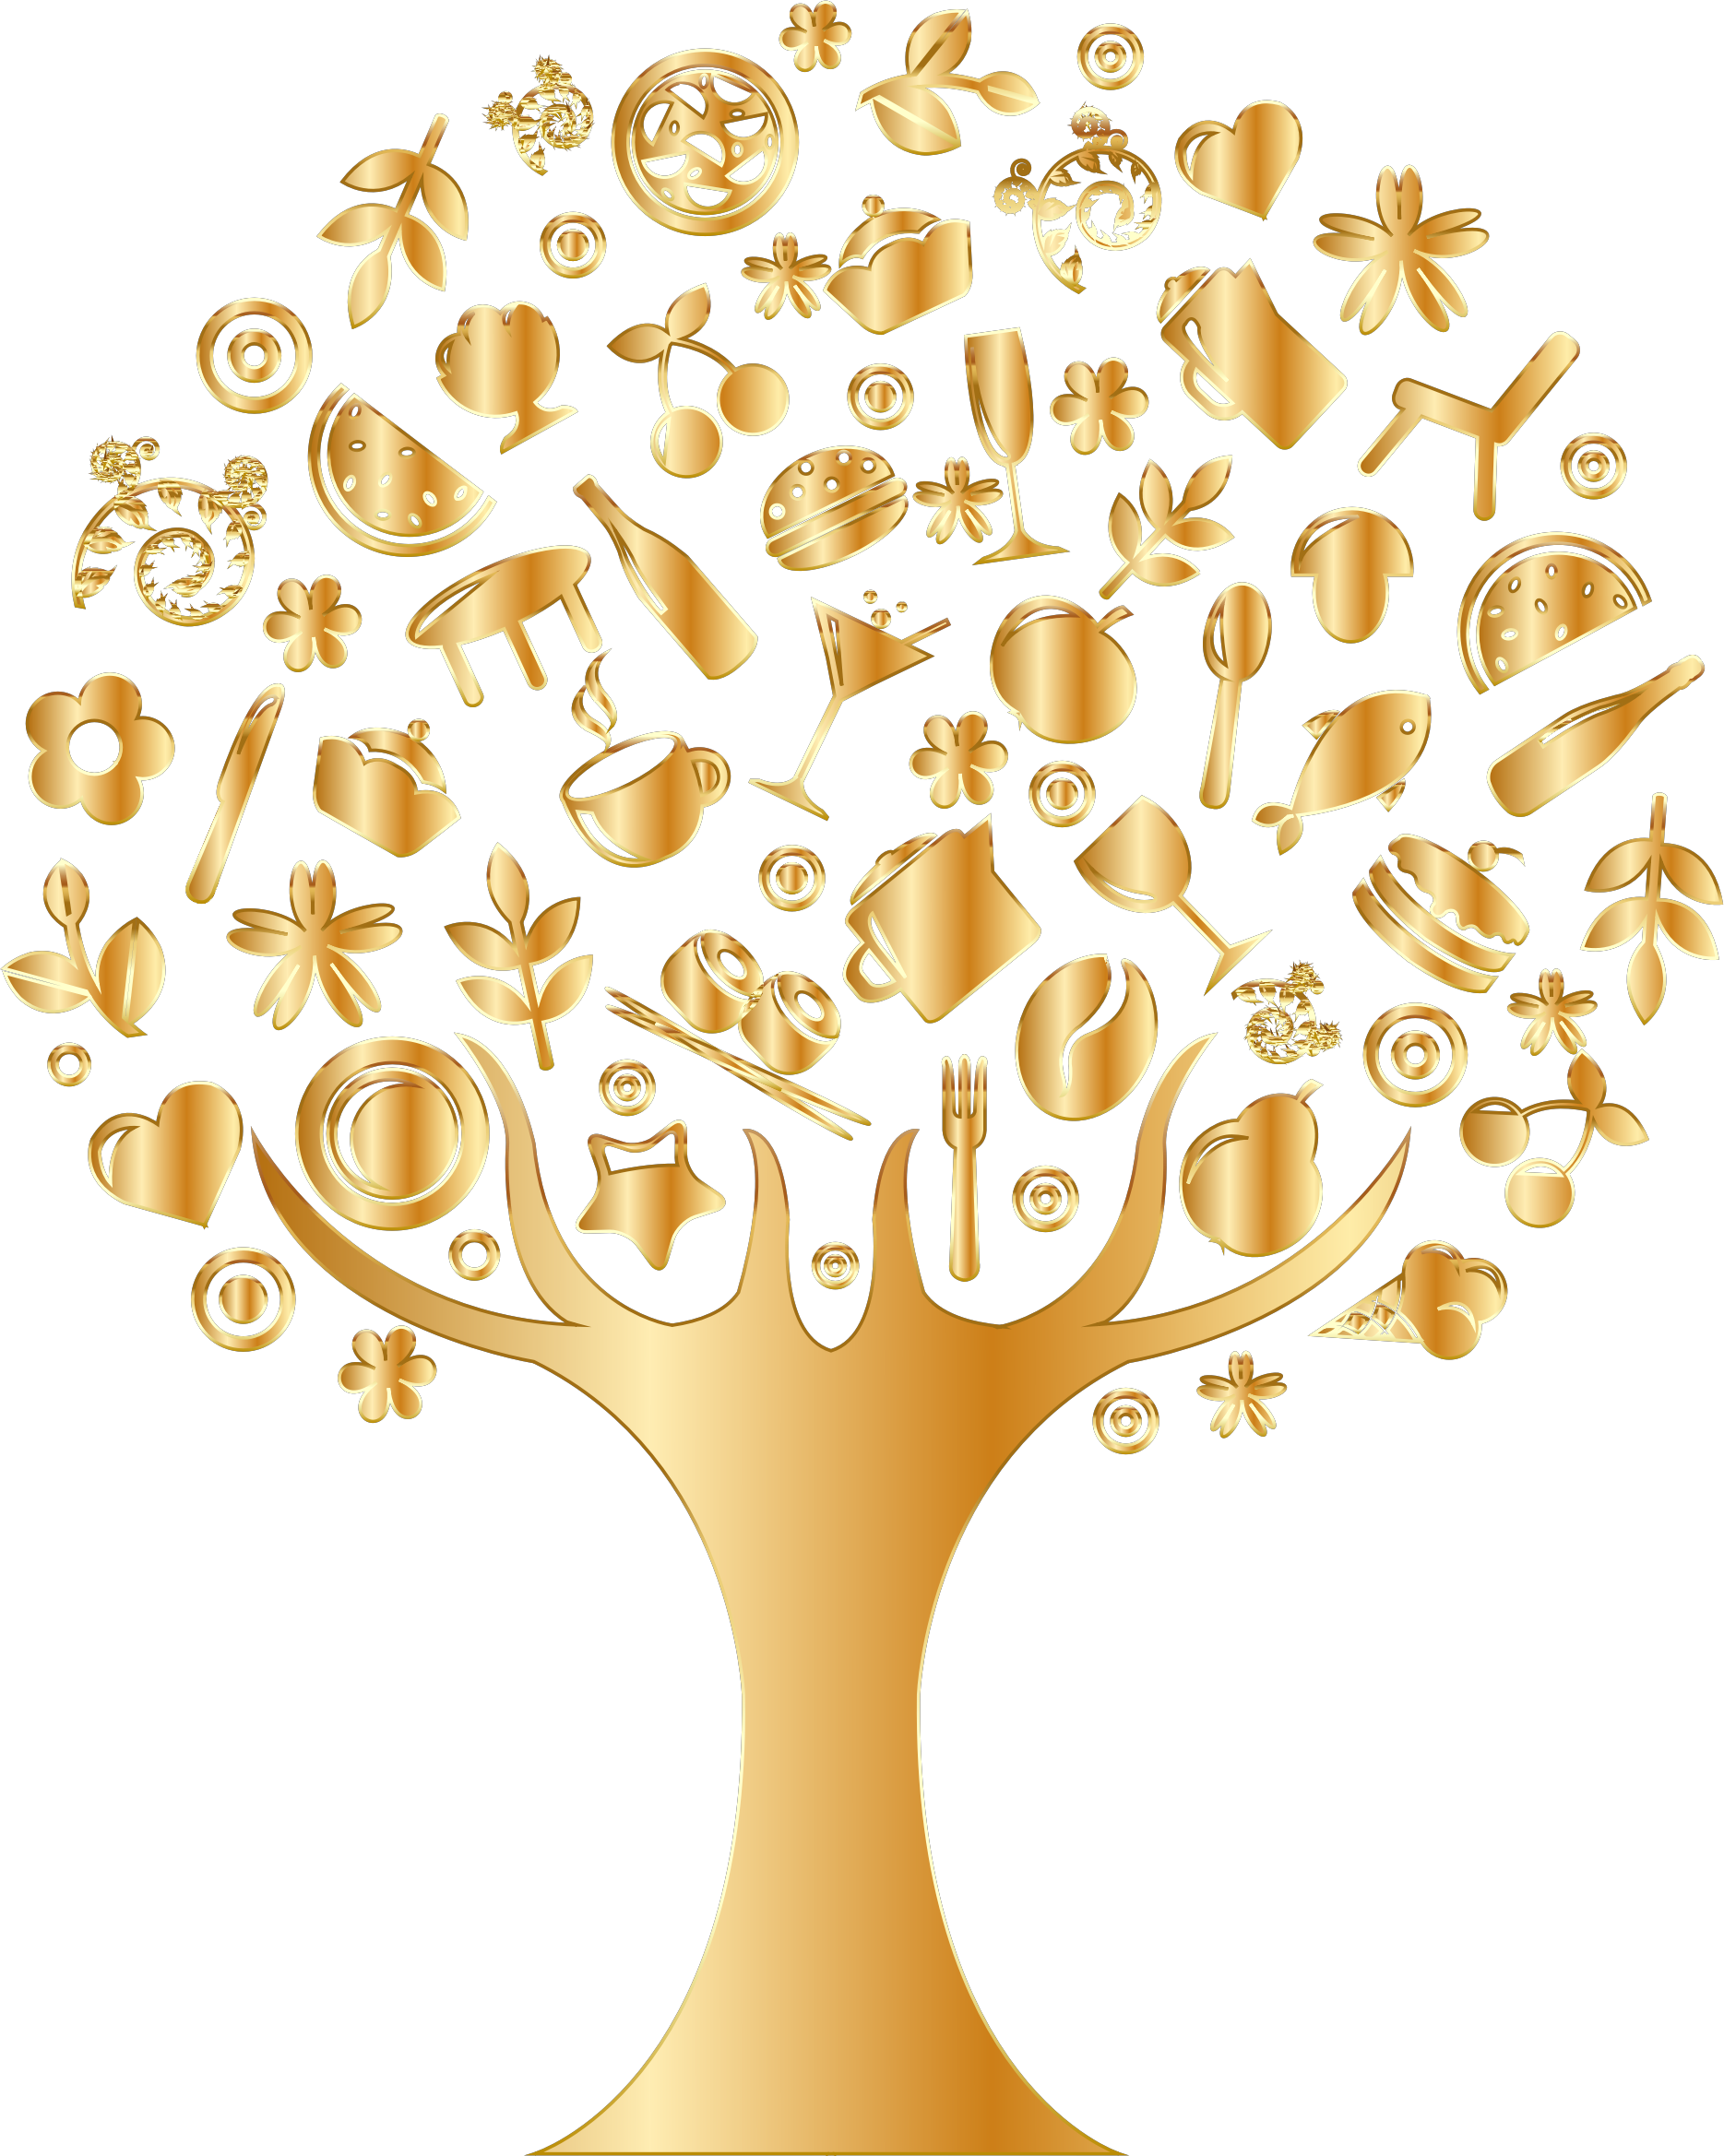 Gold Abstract Tree No Background by GDJ